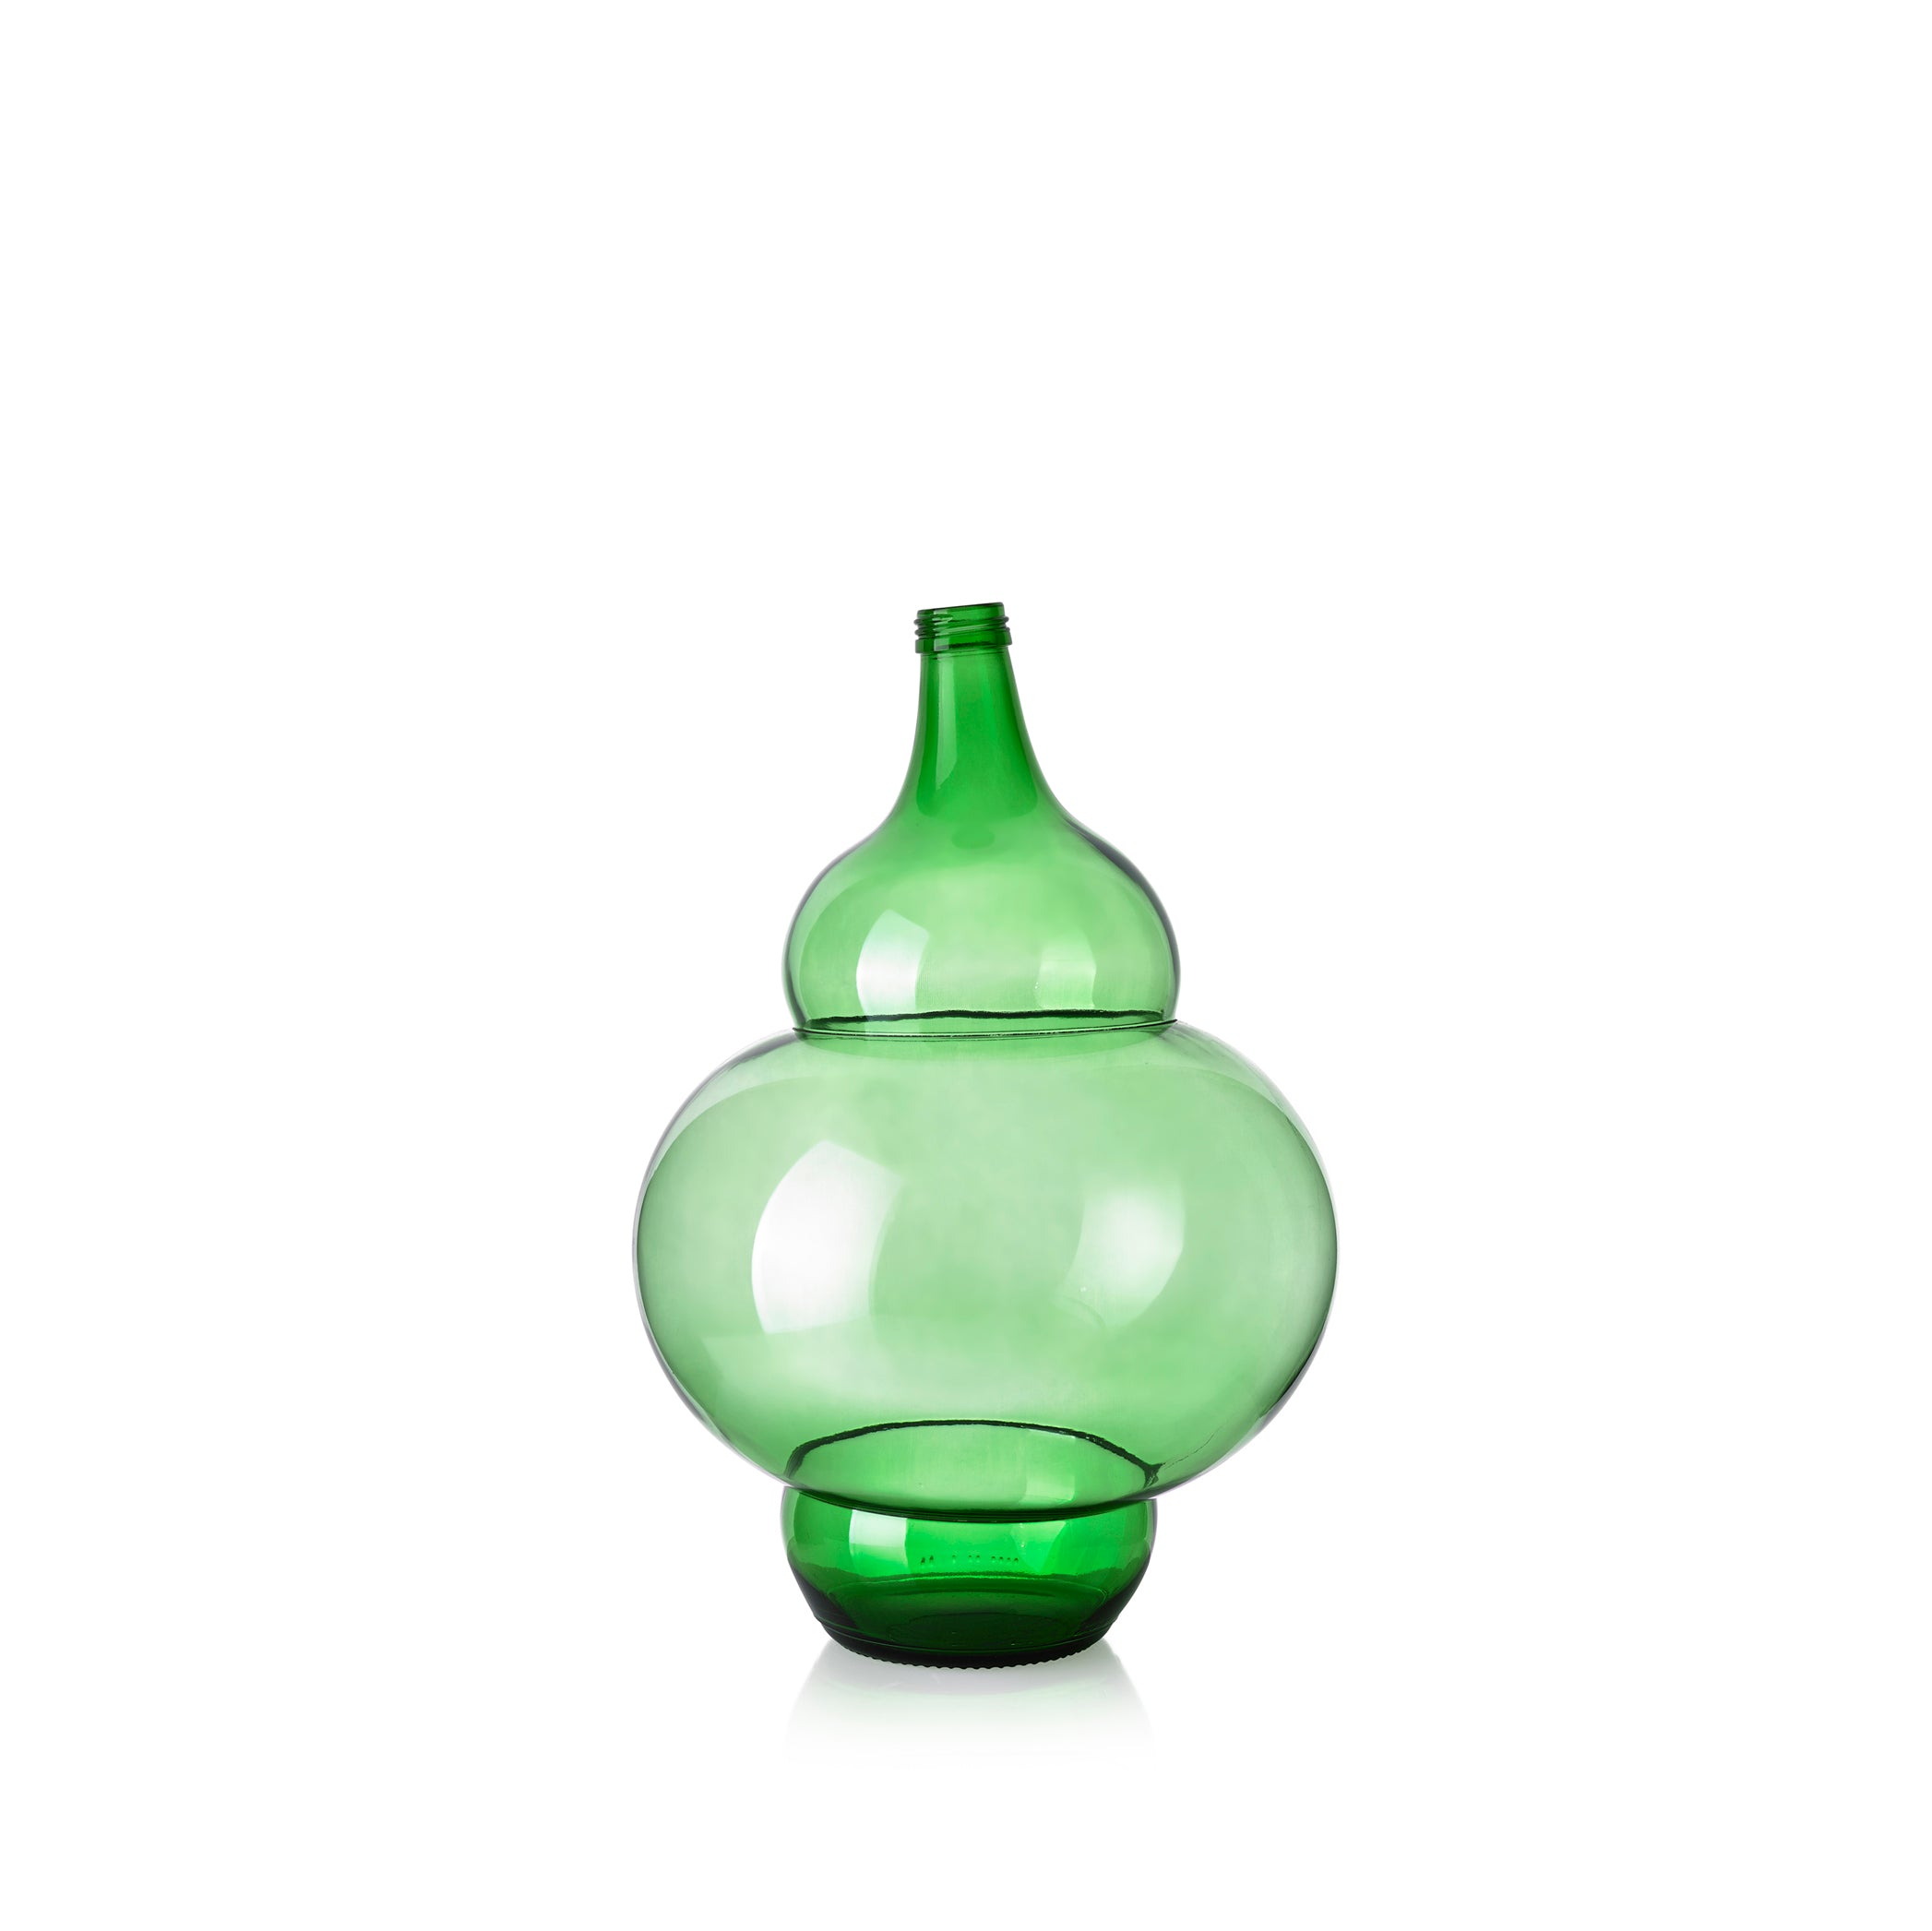 Handblown Genie Glass Bottle - Iago